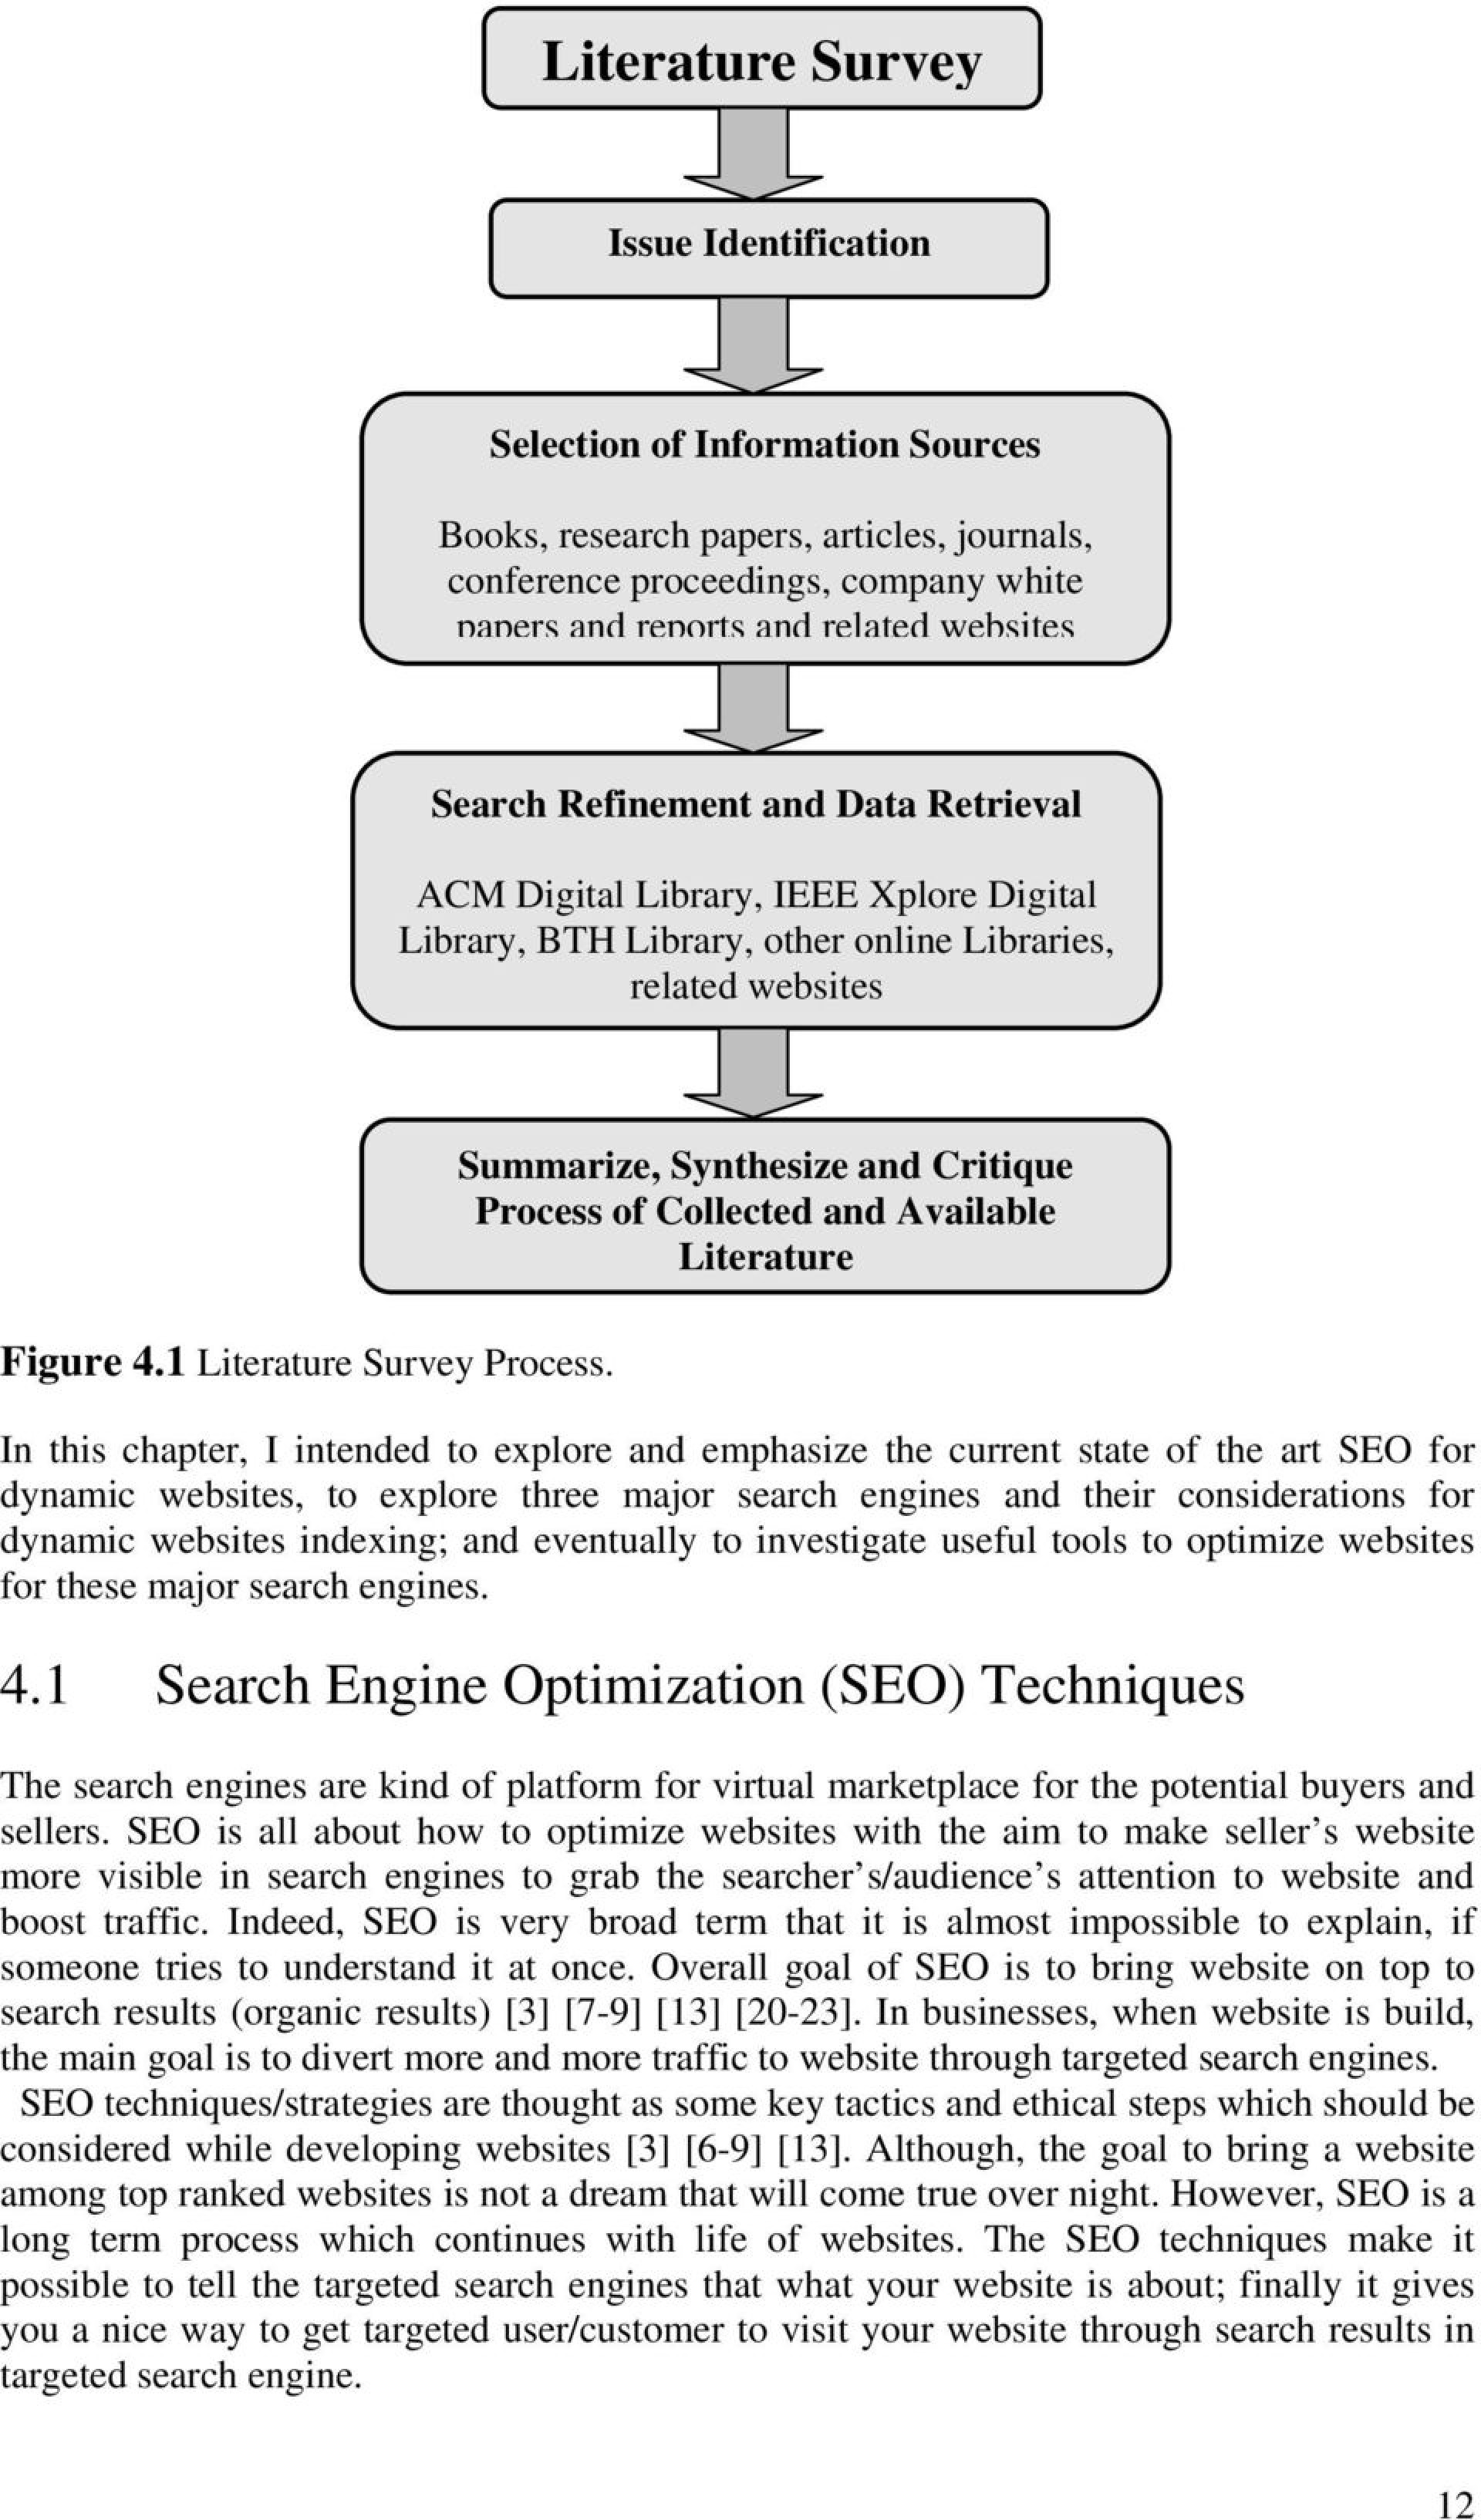 004 Ieee Research Paper Search Engine Optimization Page 20 Imposing 1920